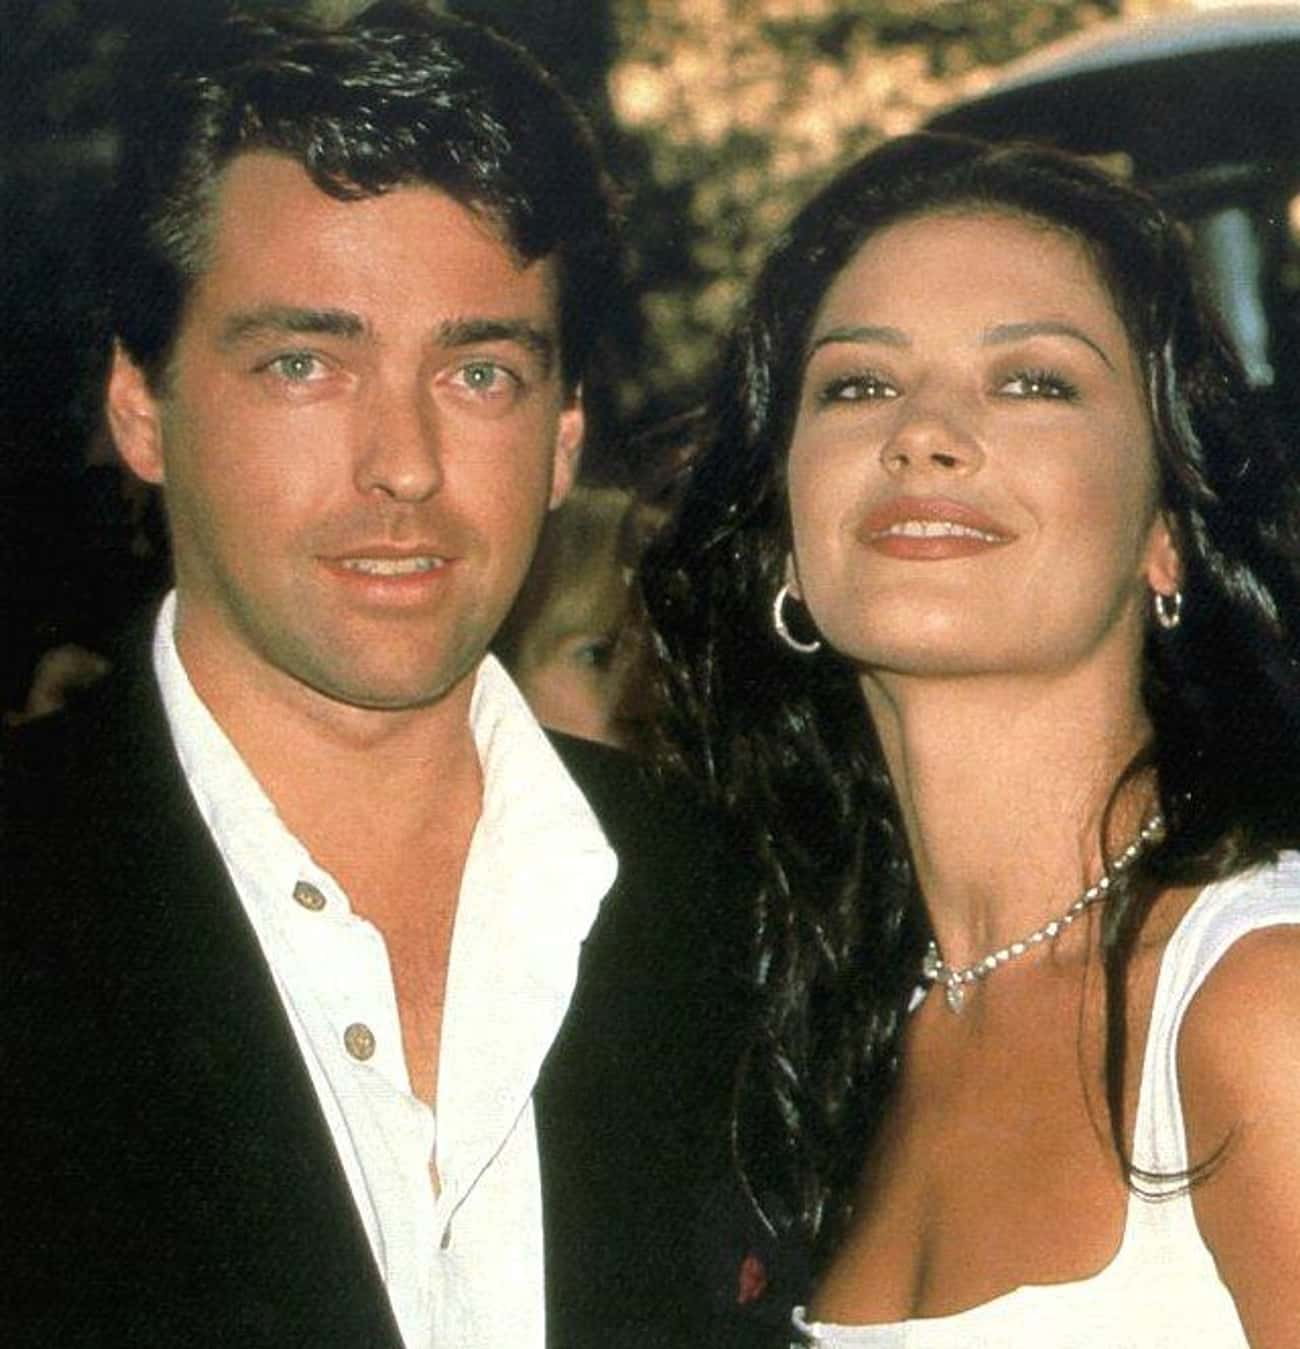 Angus Macfadyen is listed (or ranked) 4 on the list Catherine Zeta-Jones' Loves & Hookups